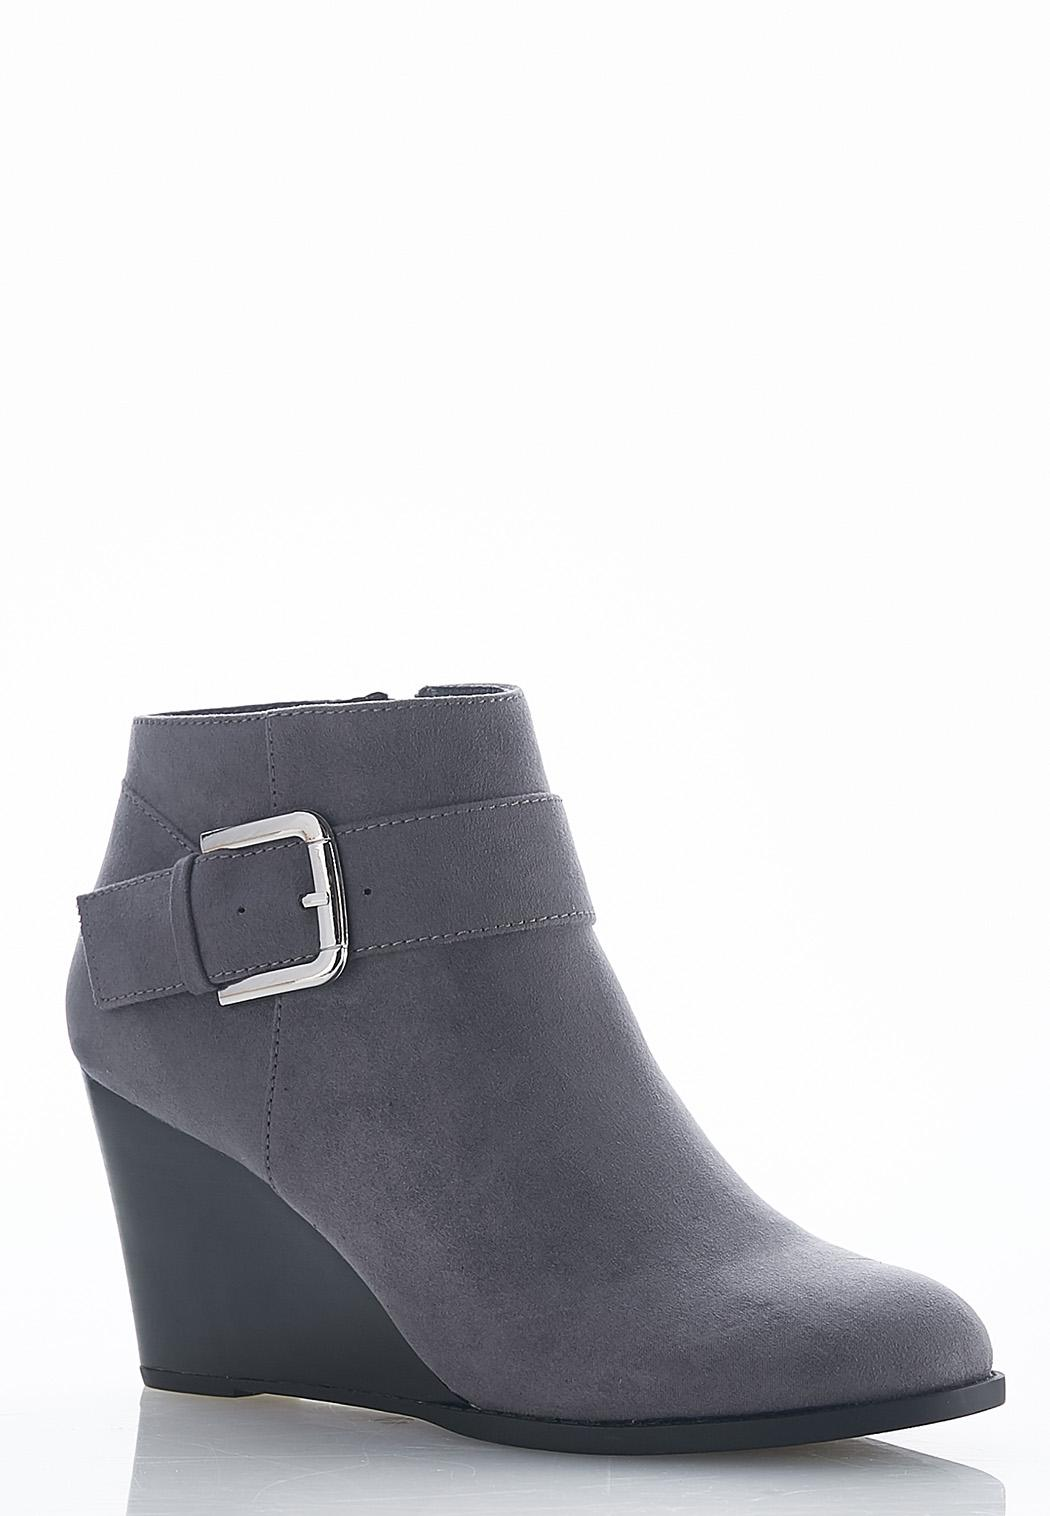 b0bfa9ab75d Wide Width Buckle Wedge Booties Ankle   Shooties Cato Fashions